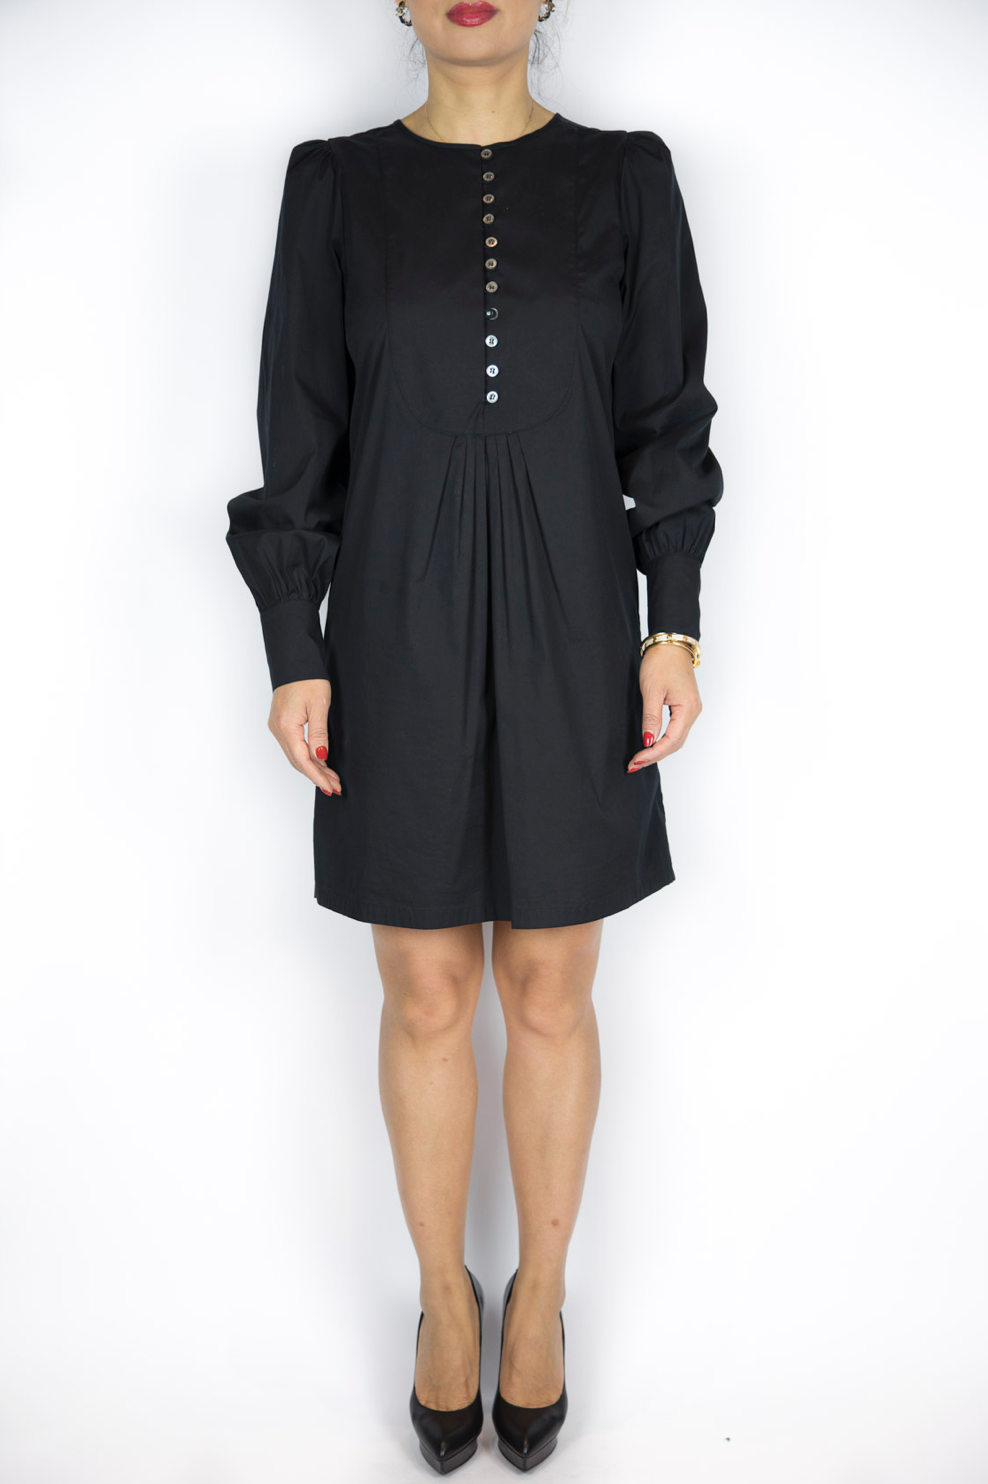 Aquascutum - Black Dress w/ Buttons - Size 6